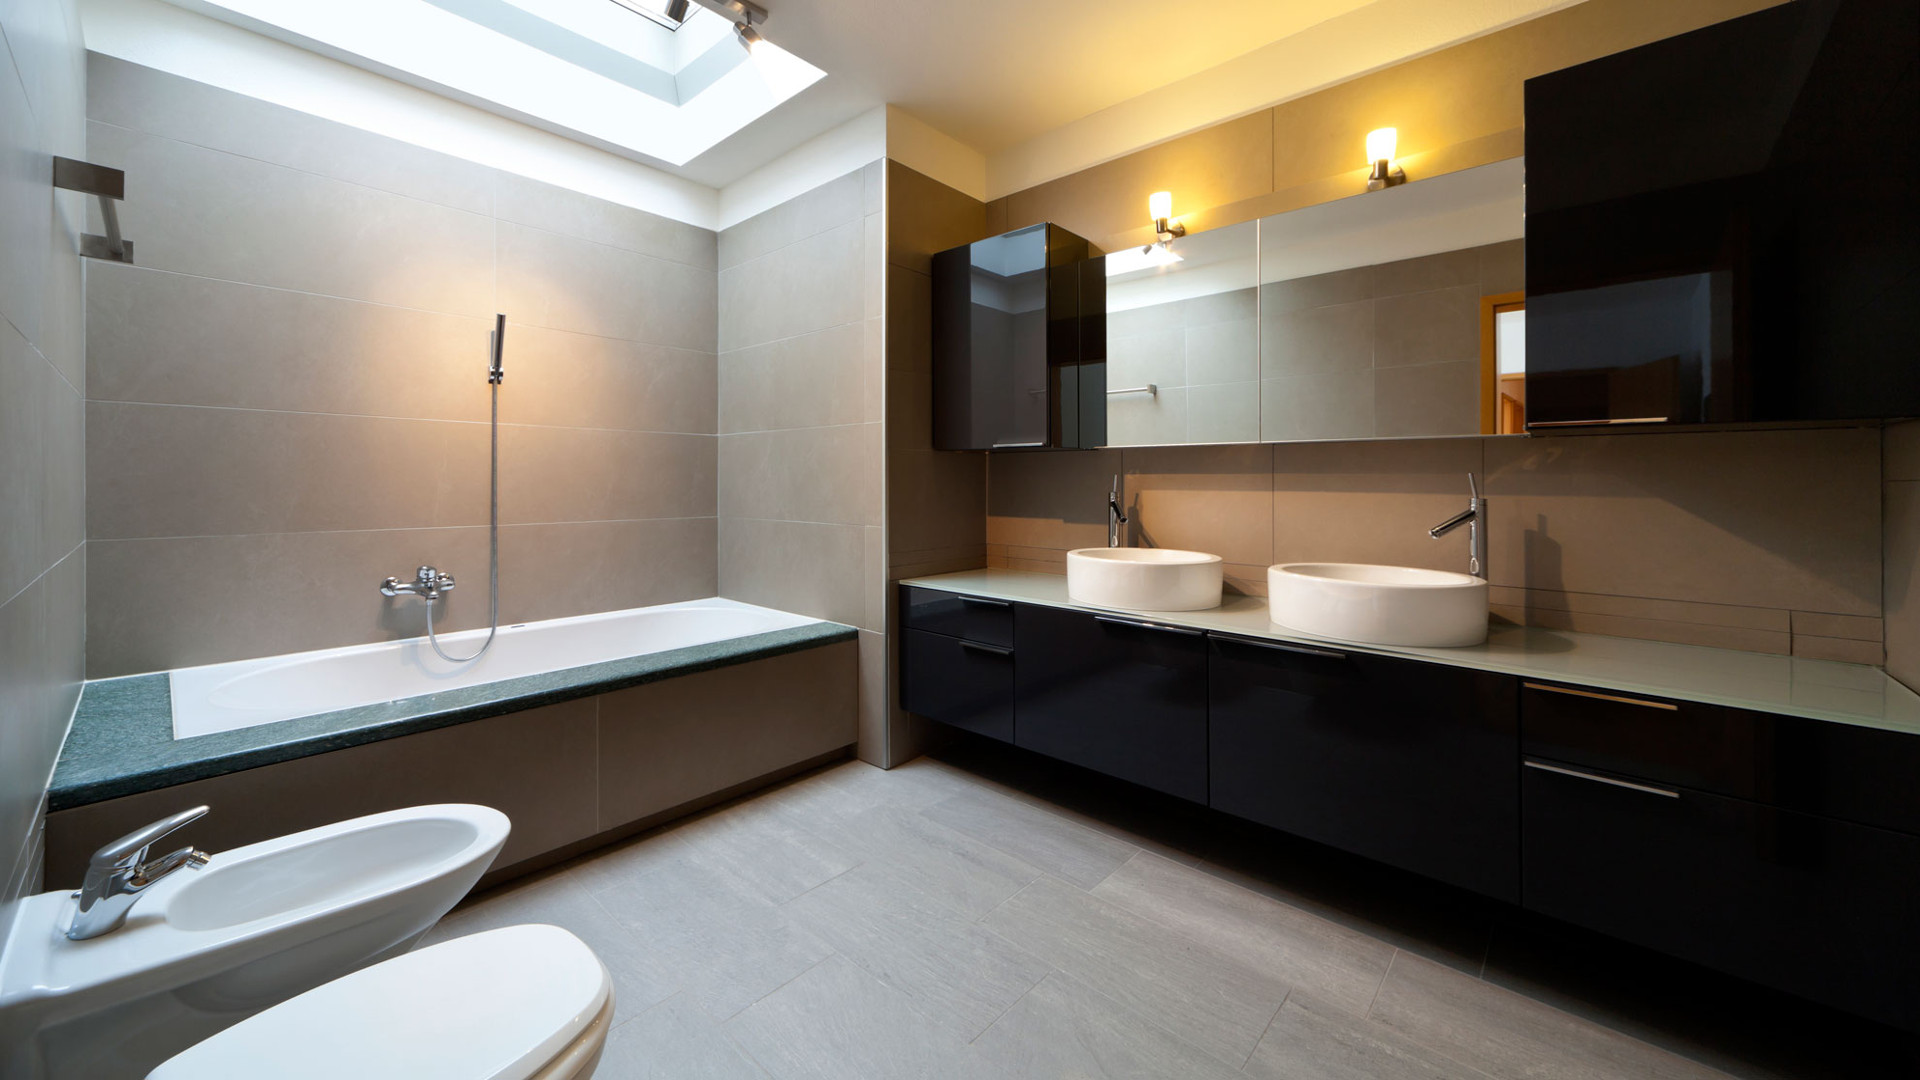 Fairfax Bathroom Remodeling